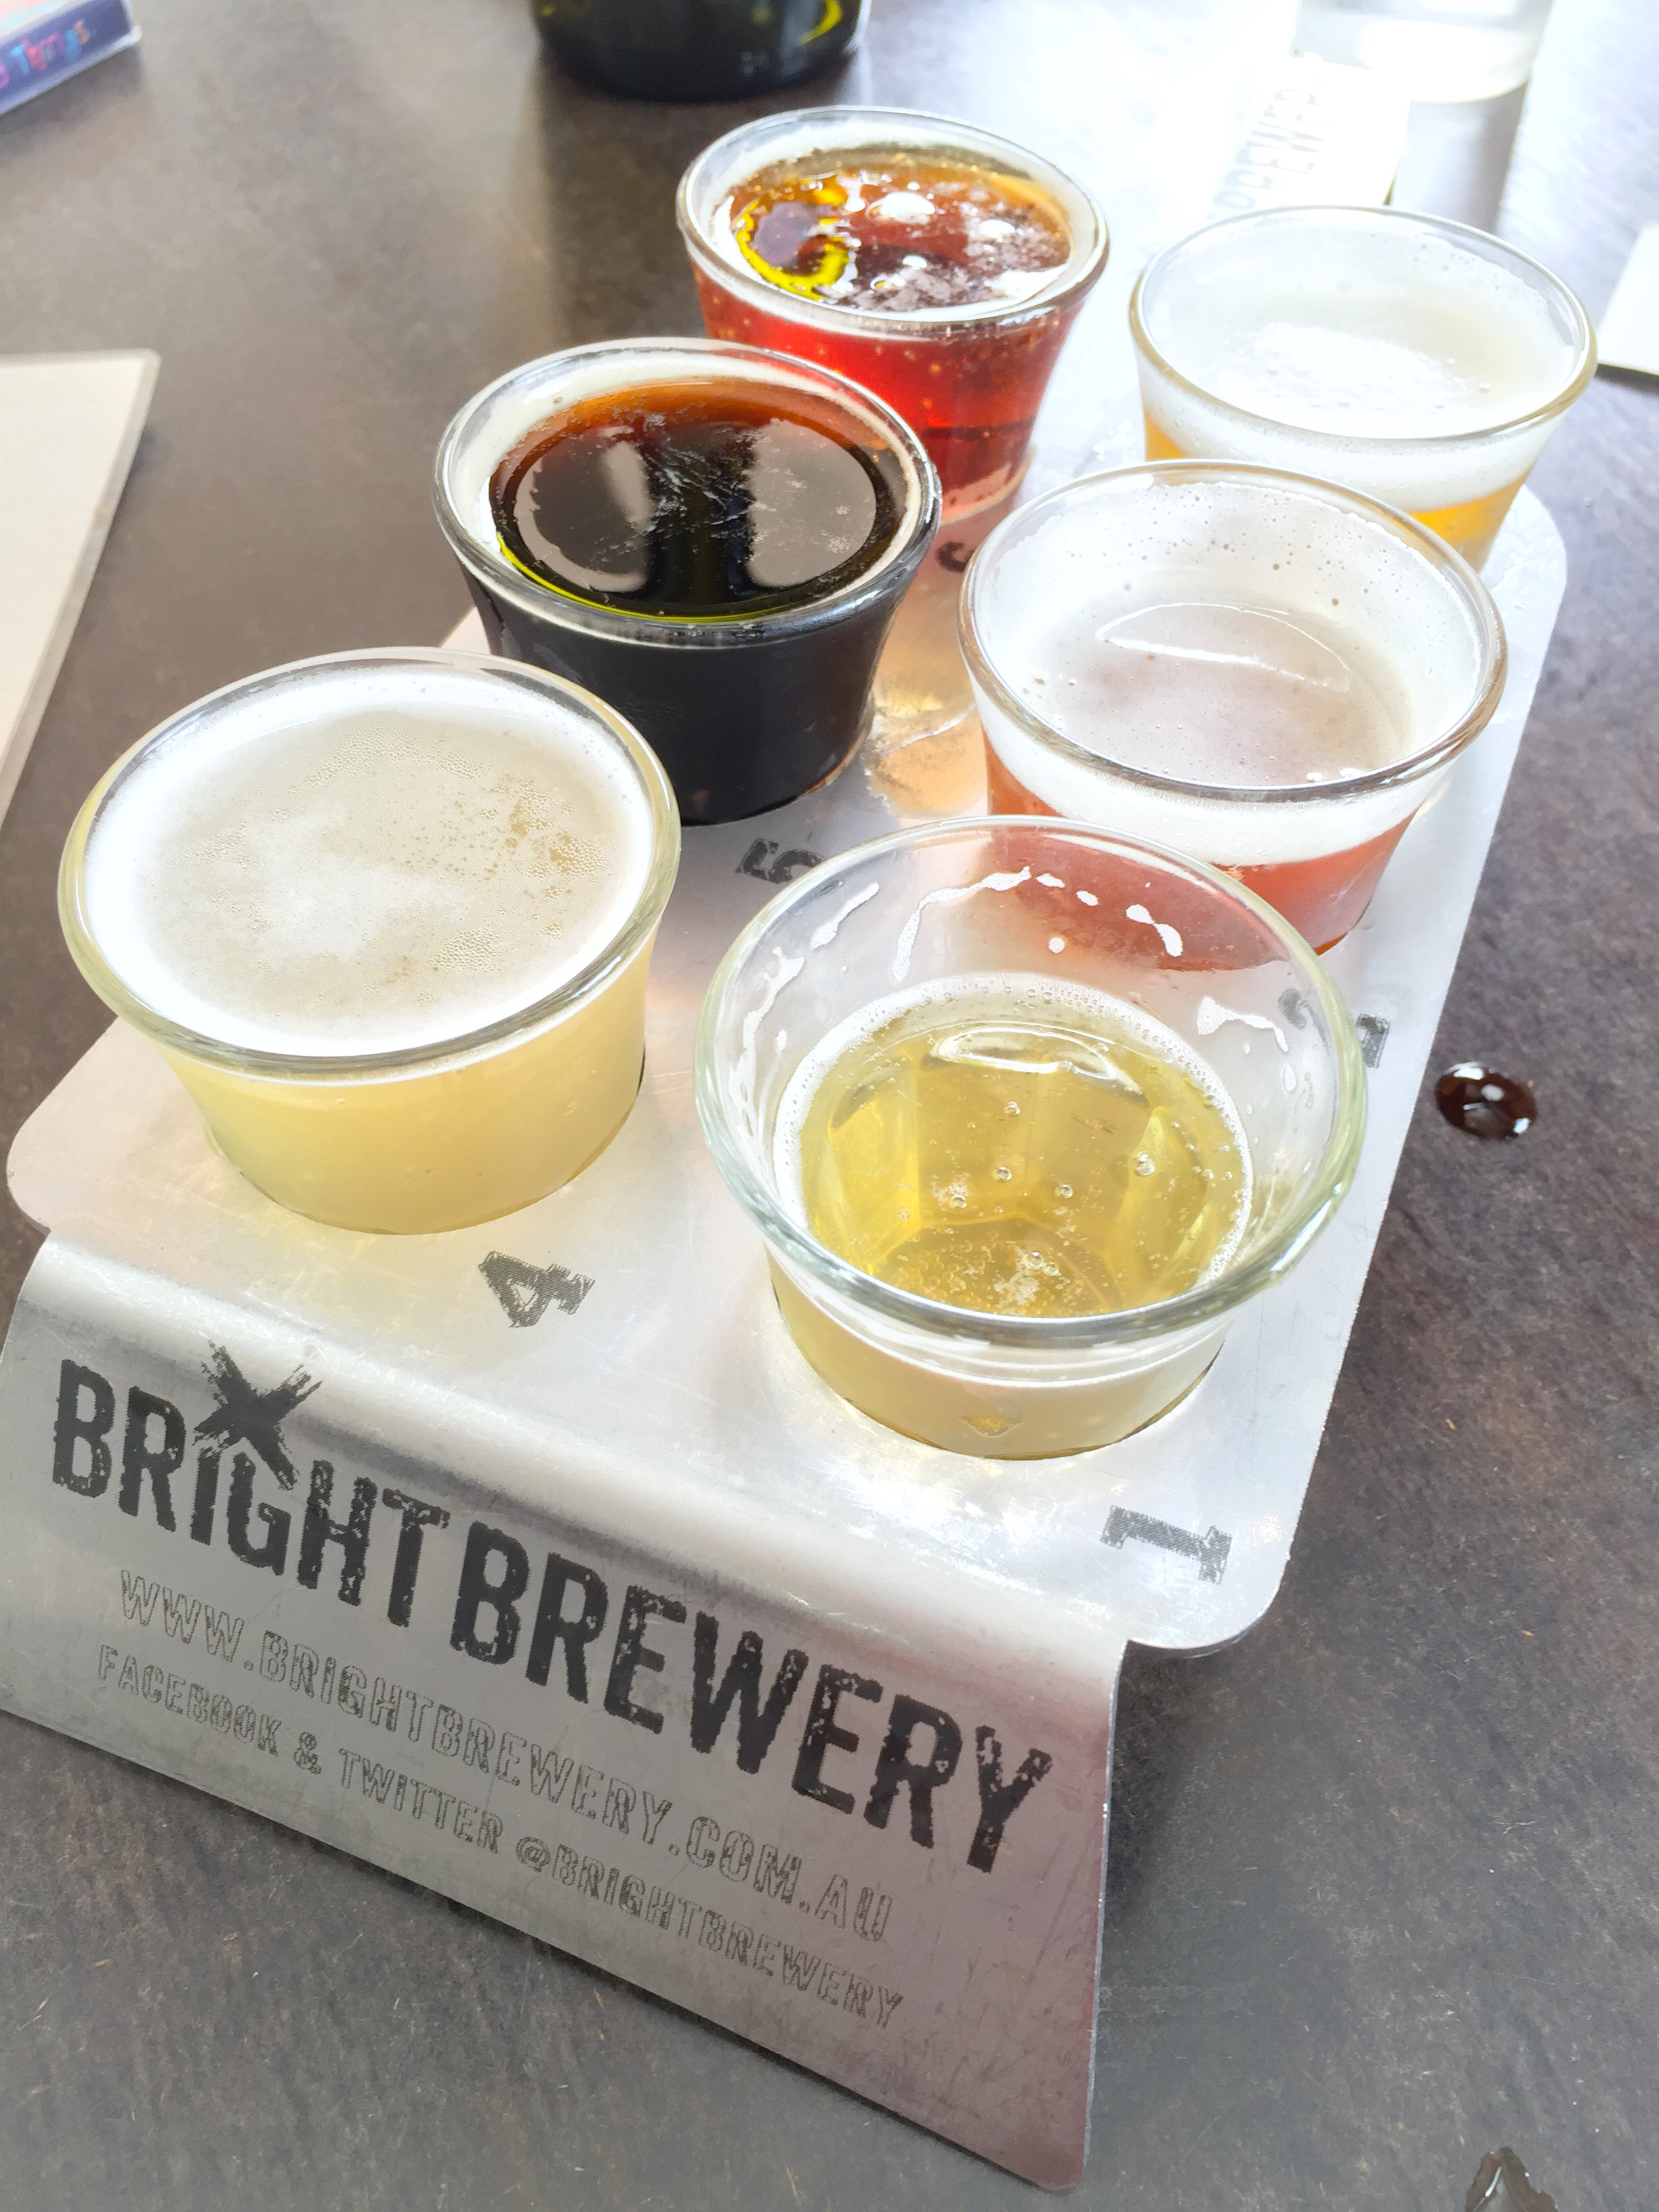 Just a taste of the beers on offer at Bright Brewery